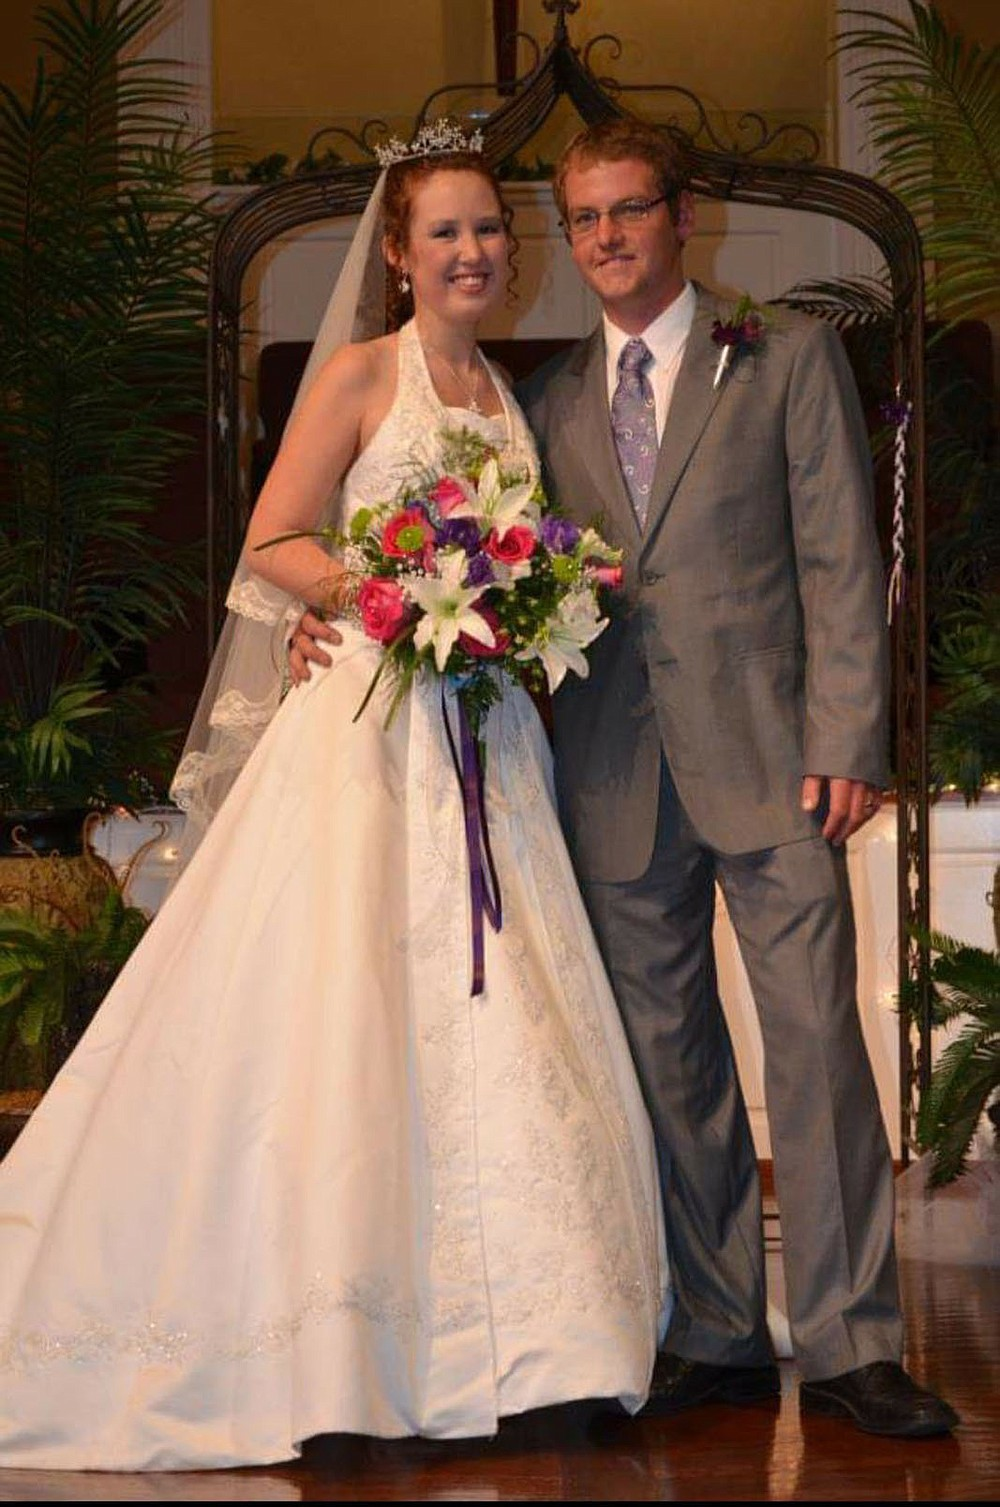 """Kayla and Rayce Dauber were married Oct. 22, 2011. """"My pastor told me to slow down and savor this day because this was the only day like this day I would get,"""" she says. """"I really felt like a princess all day."""" (Special to the Democrat-Gazette)"""